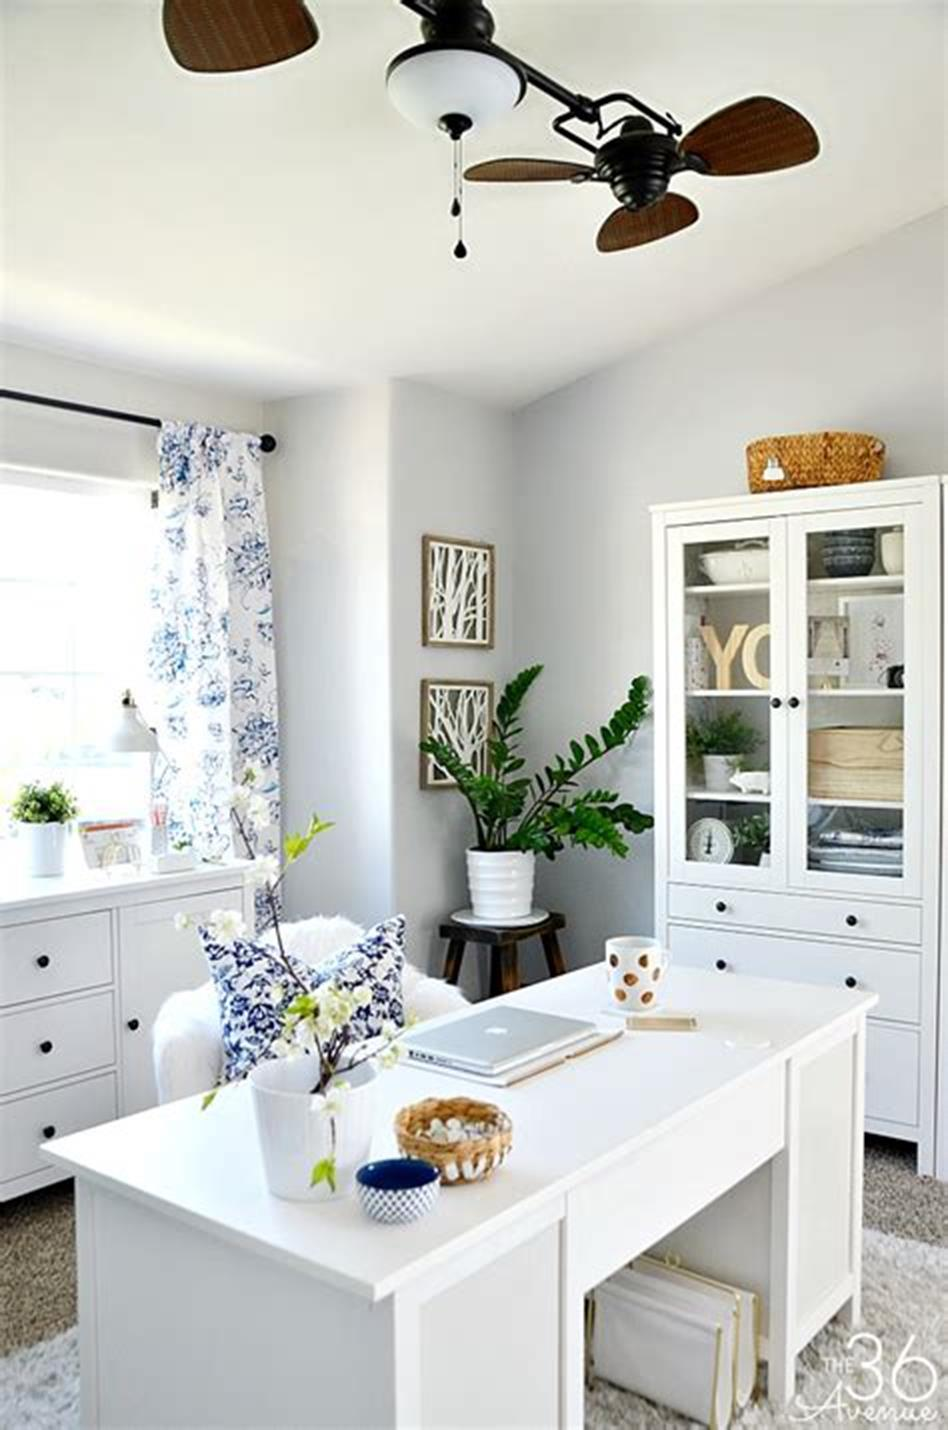 50 Best Small Space Office Decorating Ideas On a Budget 2019 13